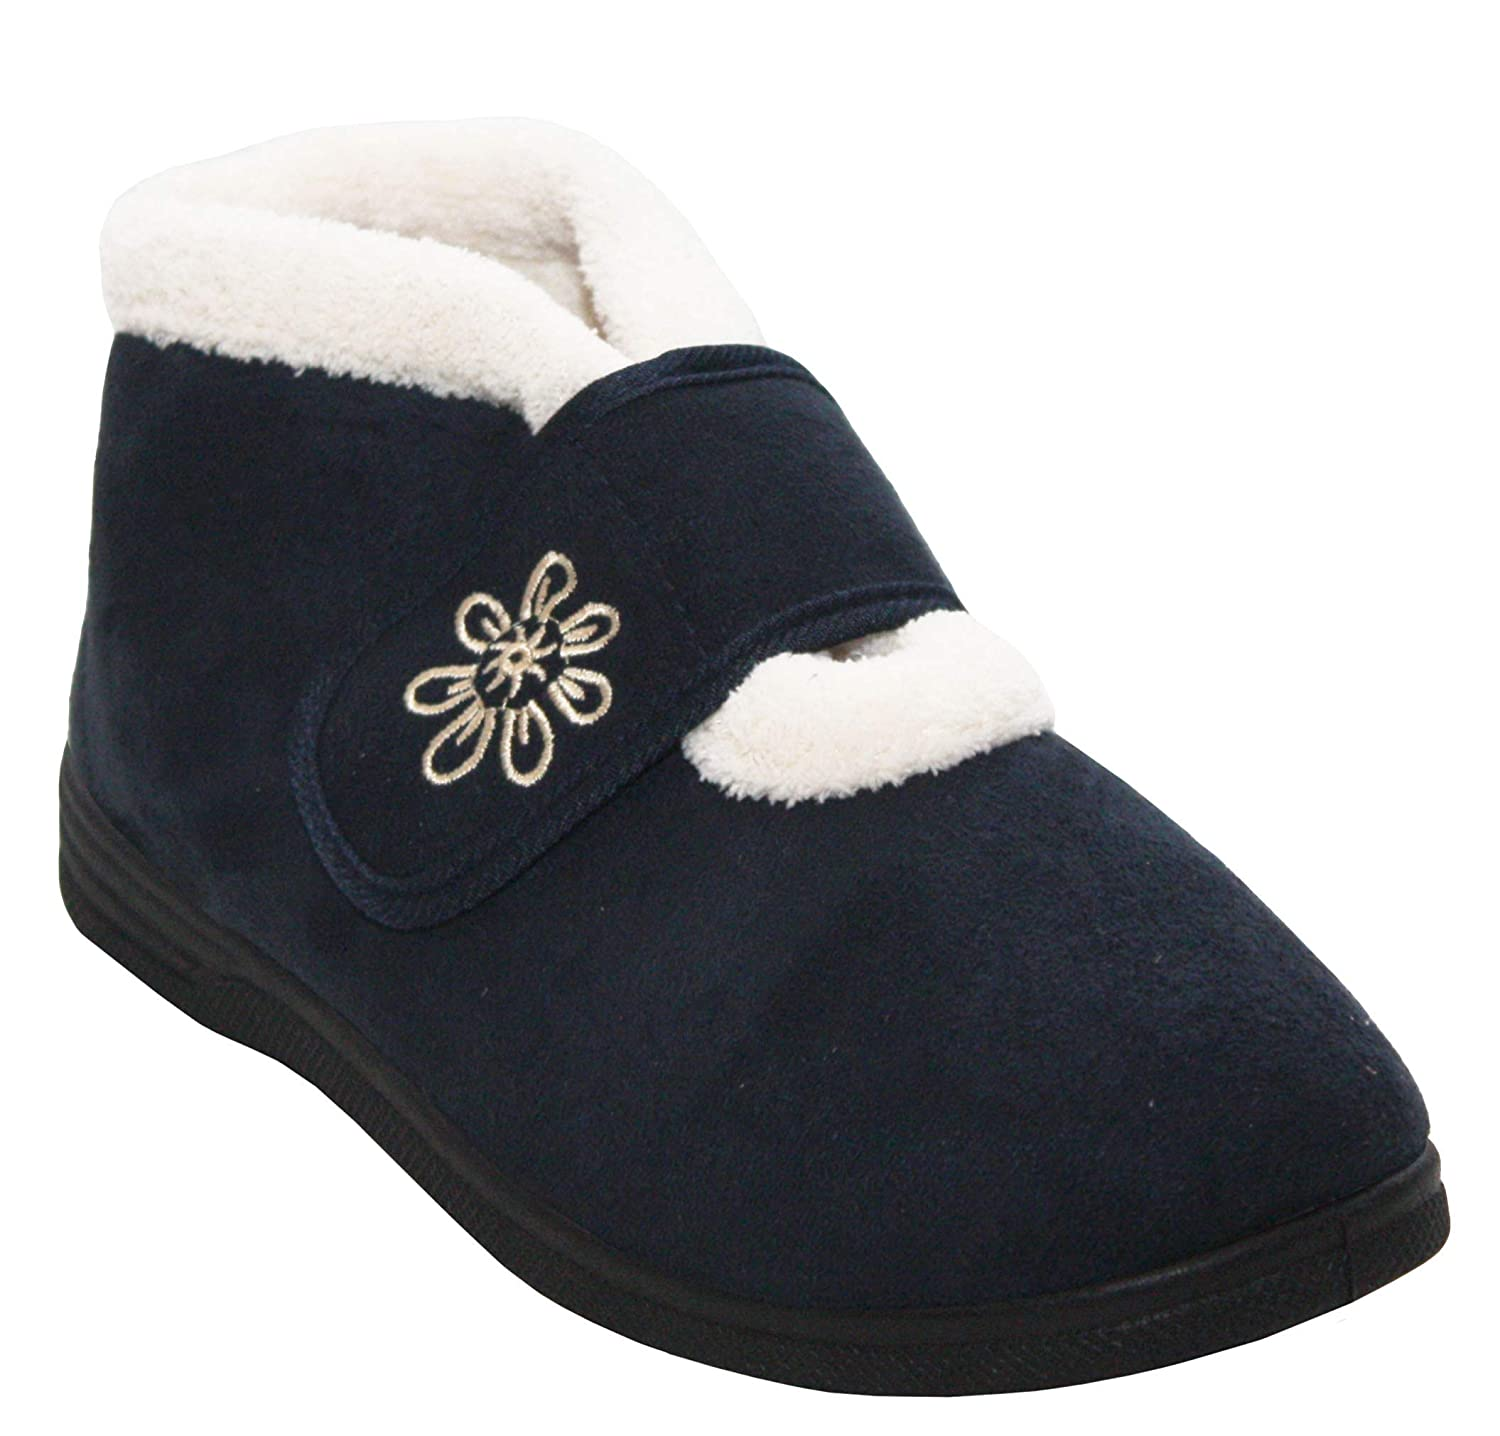 928a87d9d87b5 Cushion Walk Womens Ladies Fleece Lined Touch Fastening Strap Warm Winter  Ankle Boot Slippers UK Sizes 4-8